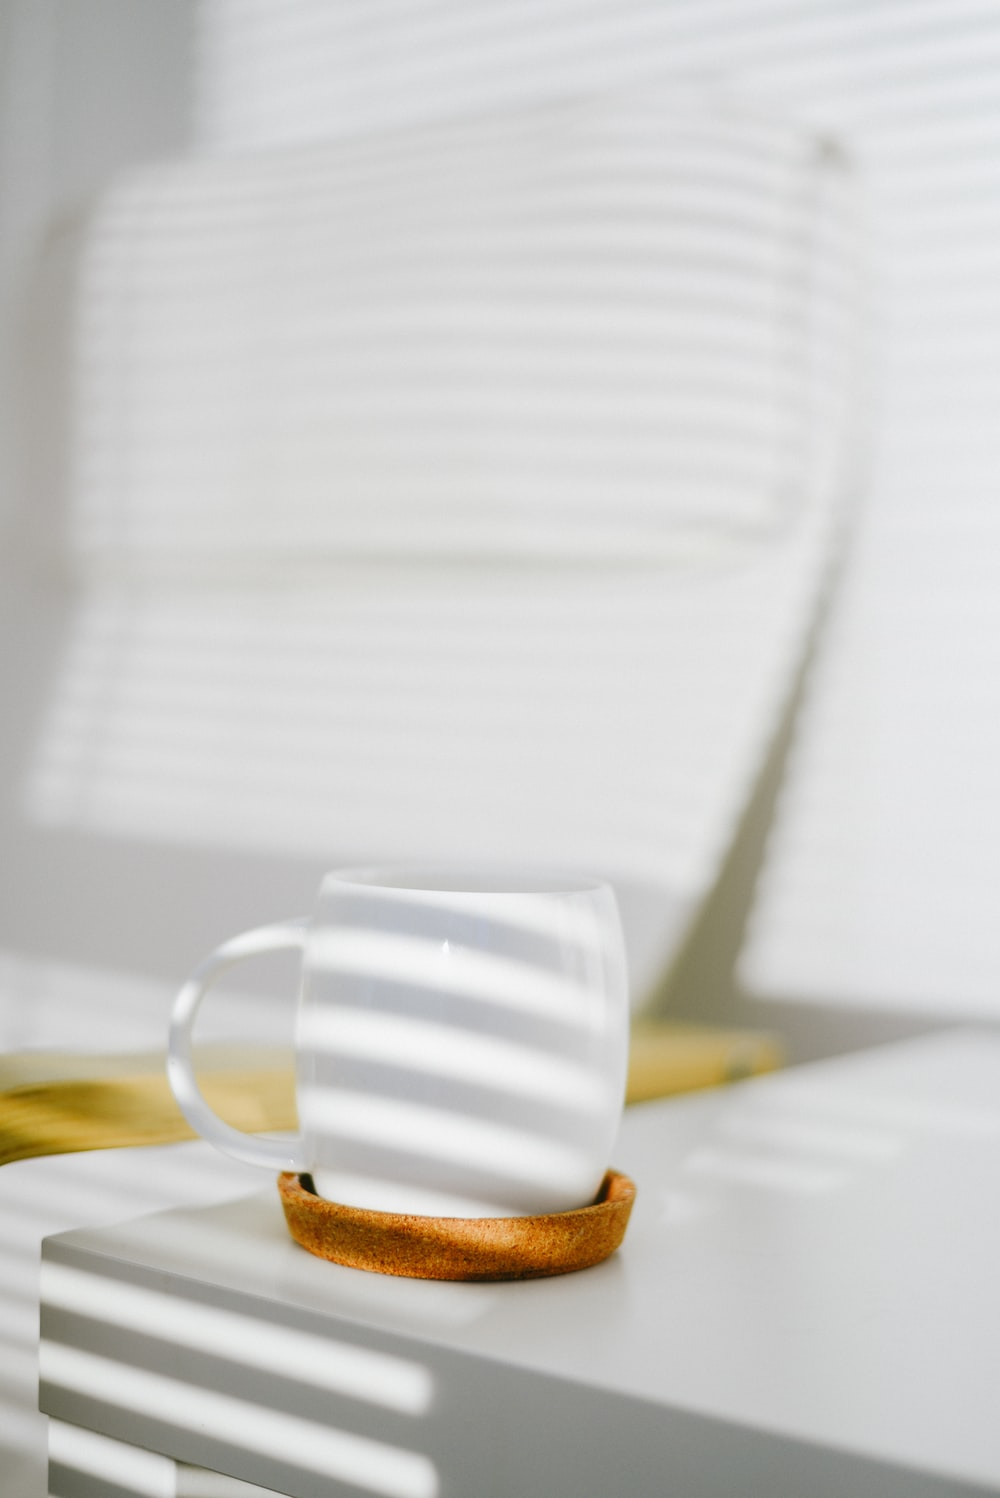 white ceramic mug with brown and white pastry on white ceramic plate